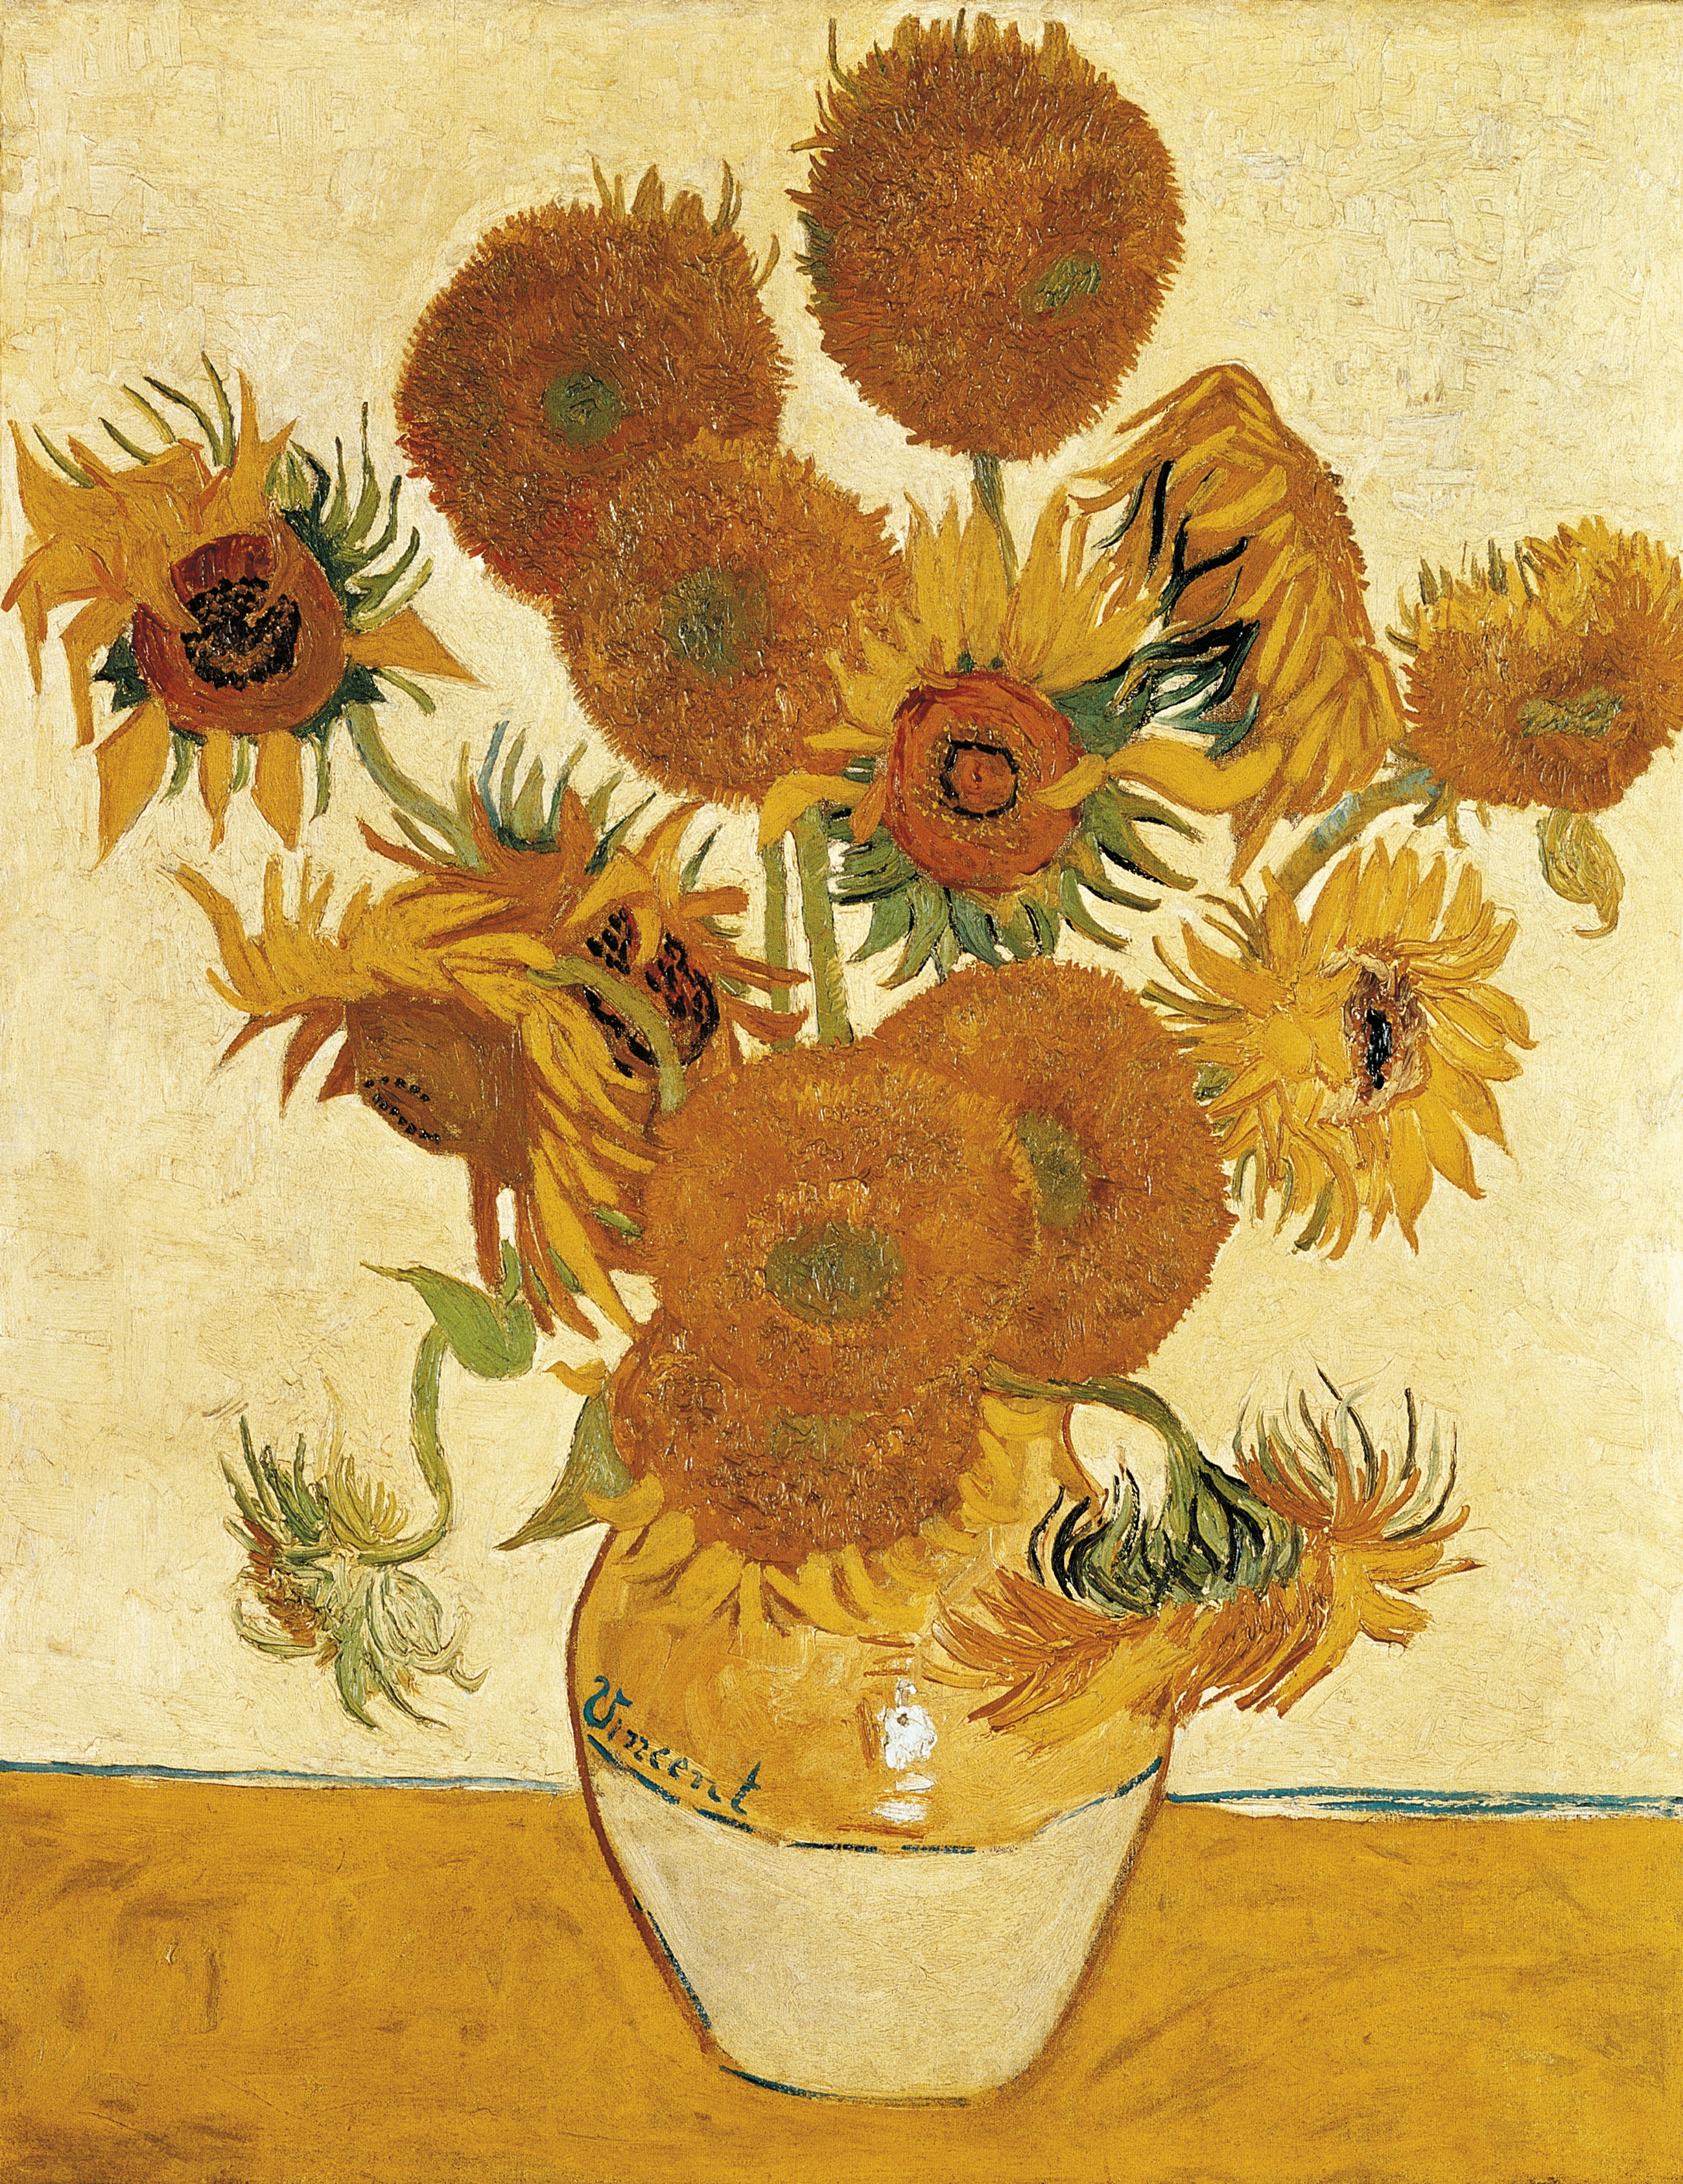 Vase with fifteen Sunflowers, 1888, by Vincent van Gogh (1853-1890), oil on canvas, 93x73 cm